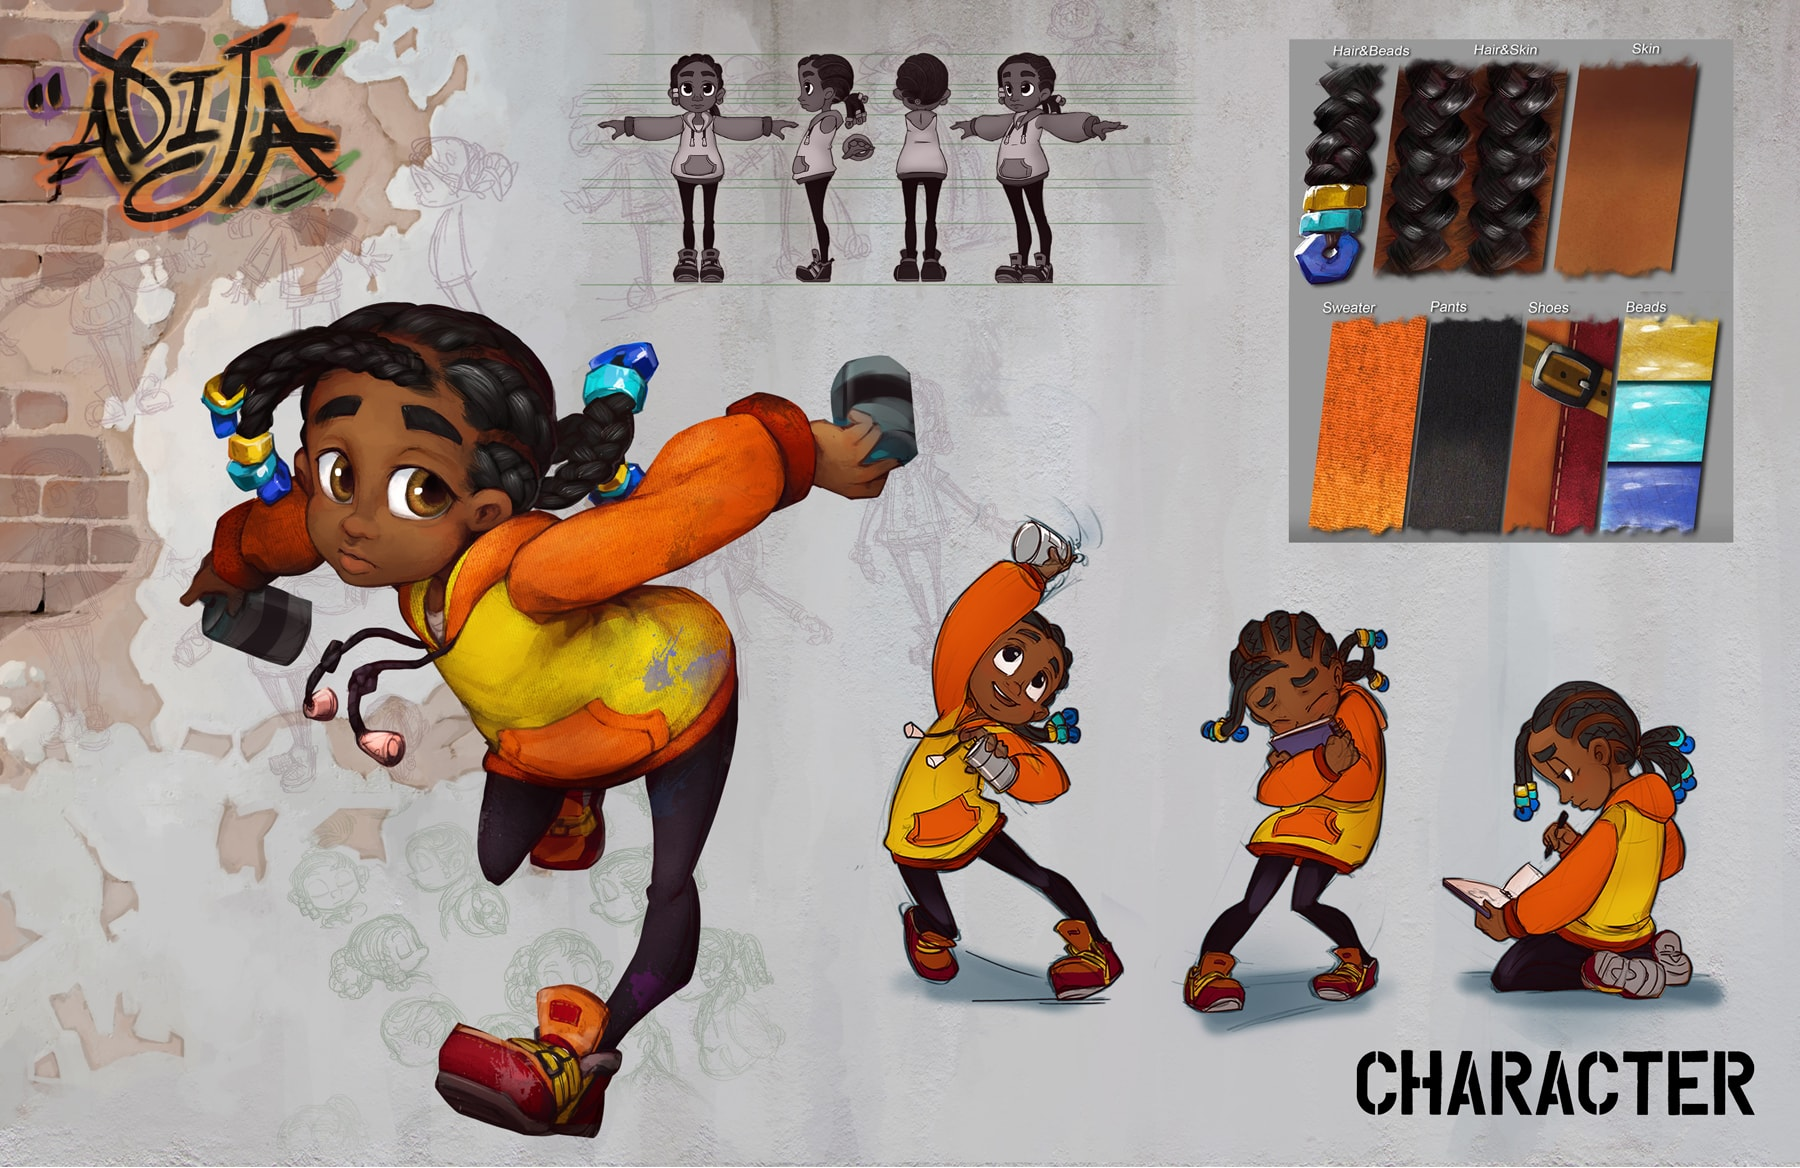 Sketches of the Adija character in various poses, and the details of her hair, skin and clothing